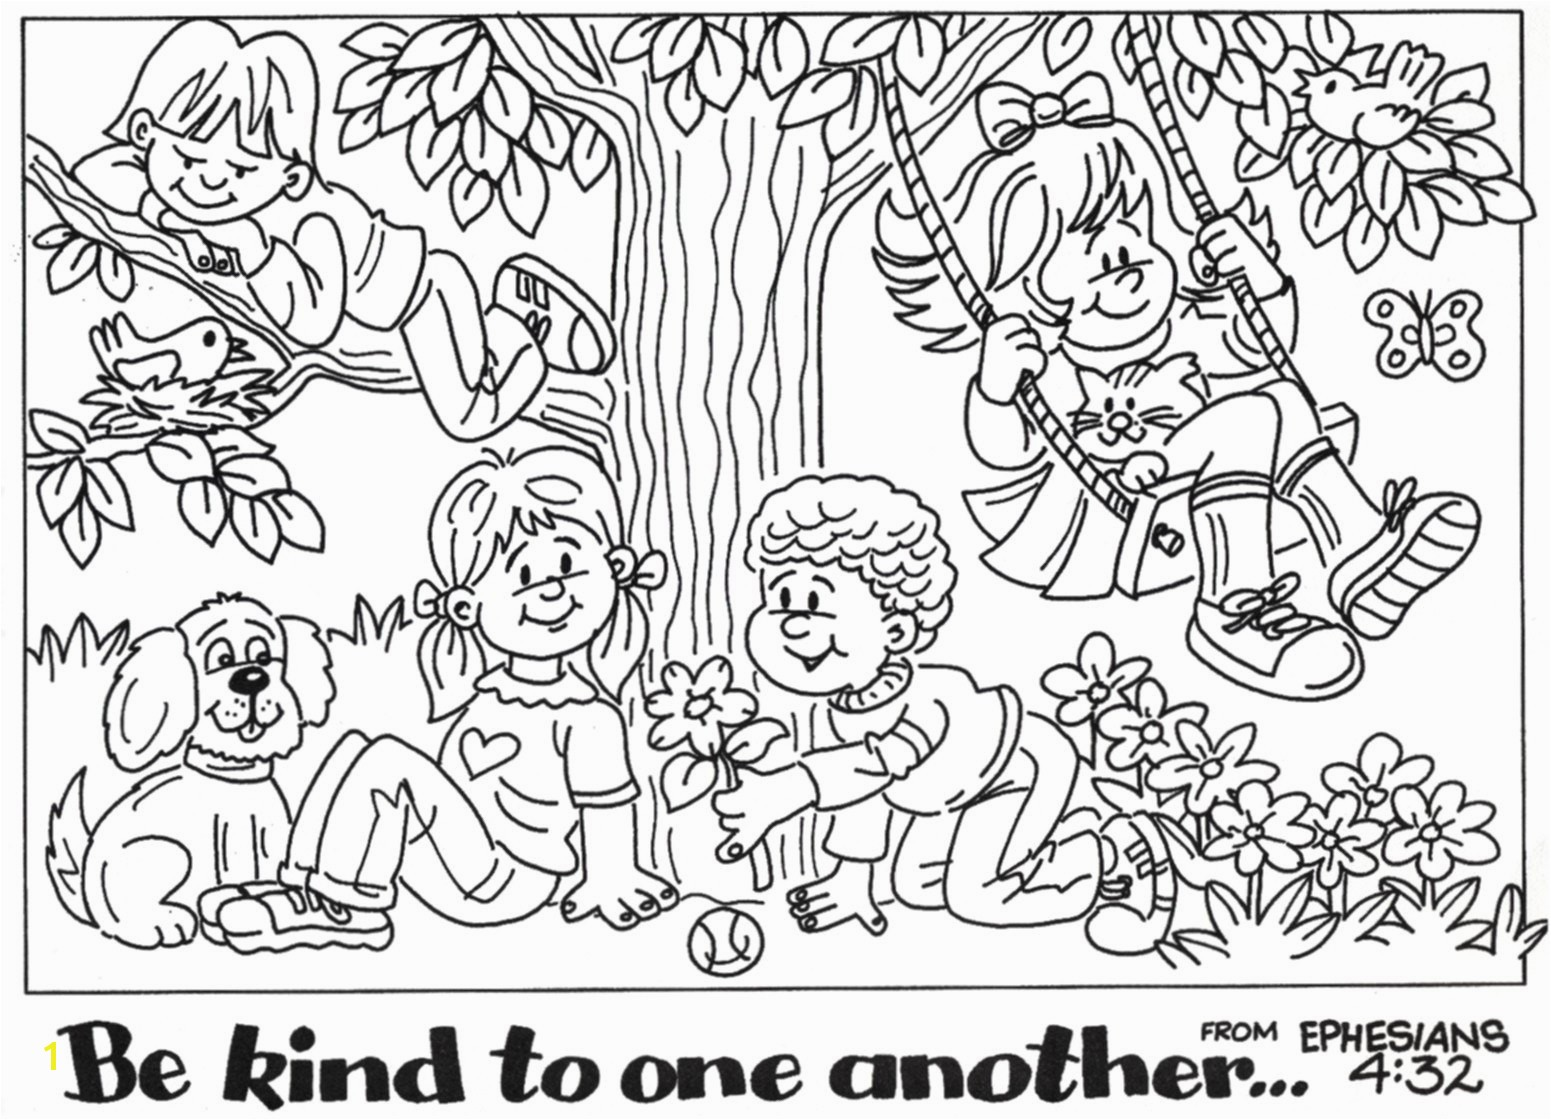 Love Thy Neighbor Coloring Pages 14 New Love Thy Neighbor Coloring Pages Stock